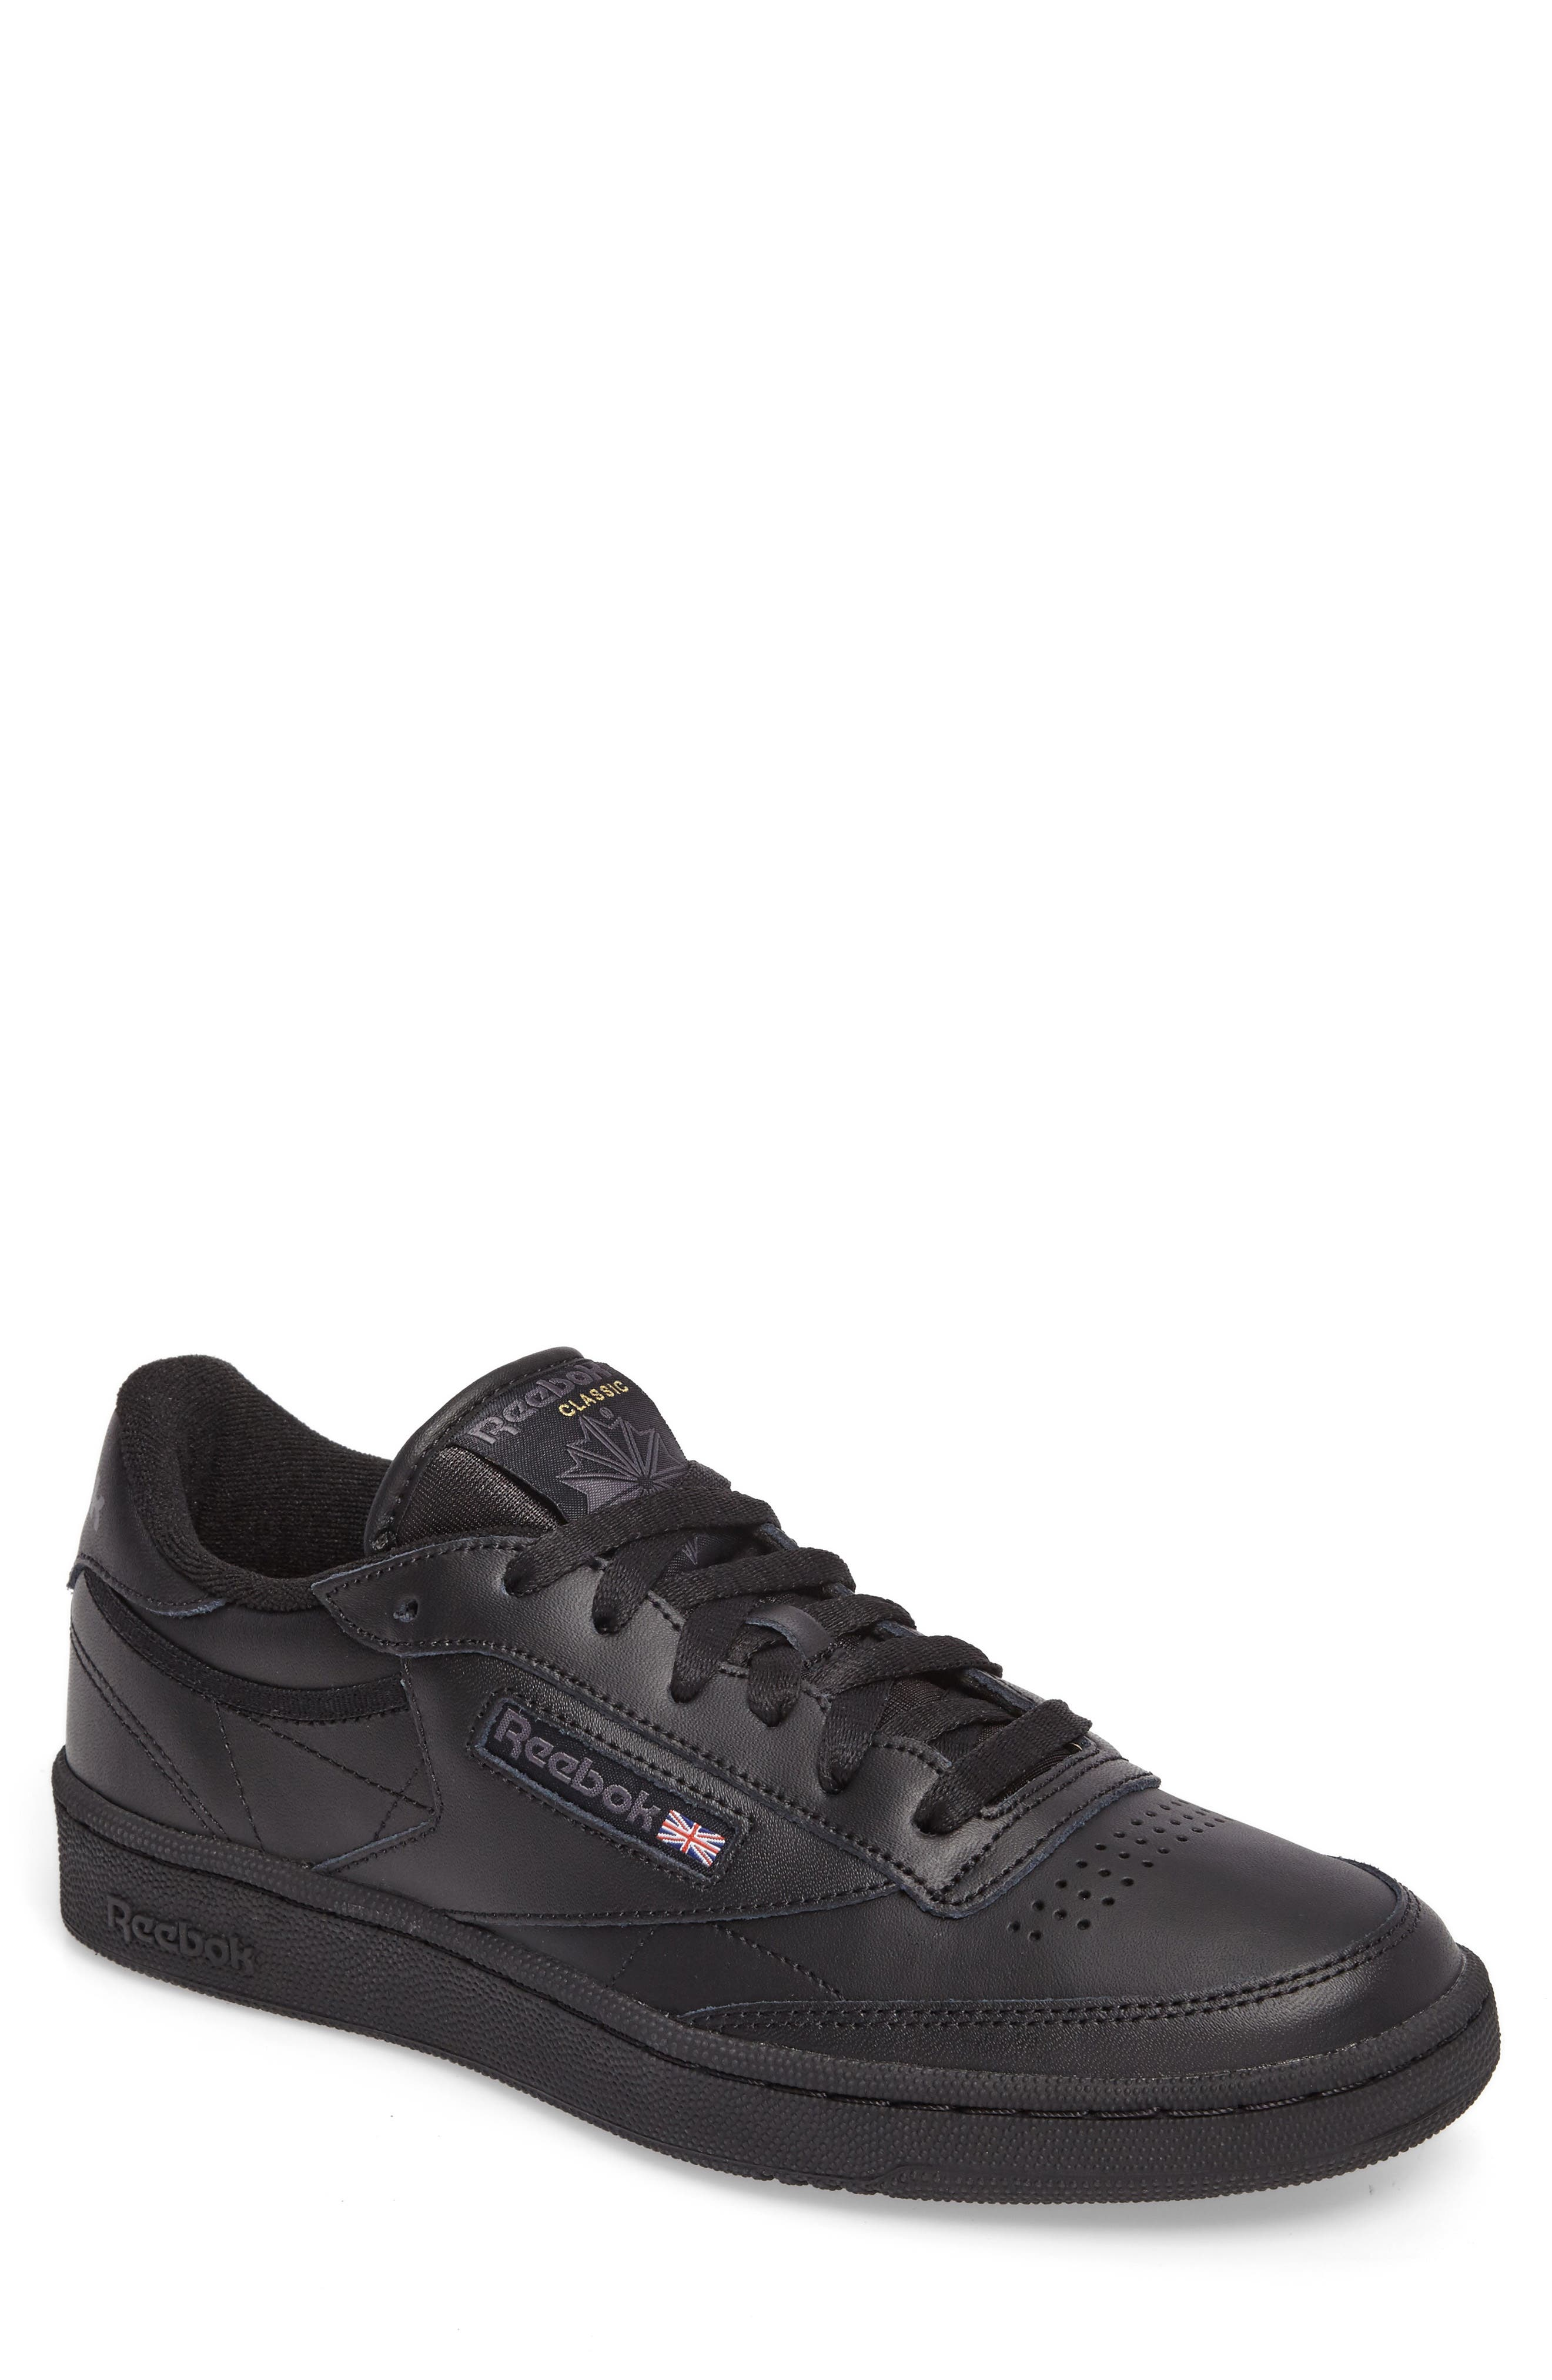 REEBOK,                             Club C 85 Sneaker,                             Main thumbnail 1, color,                             001